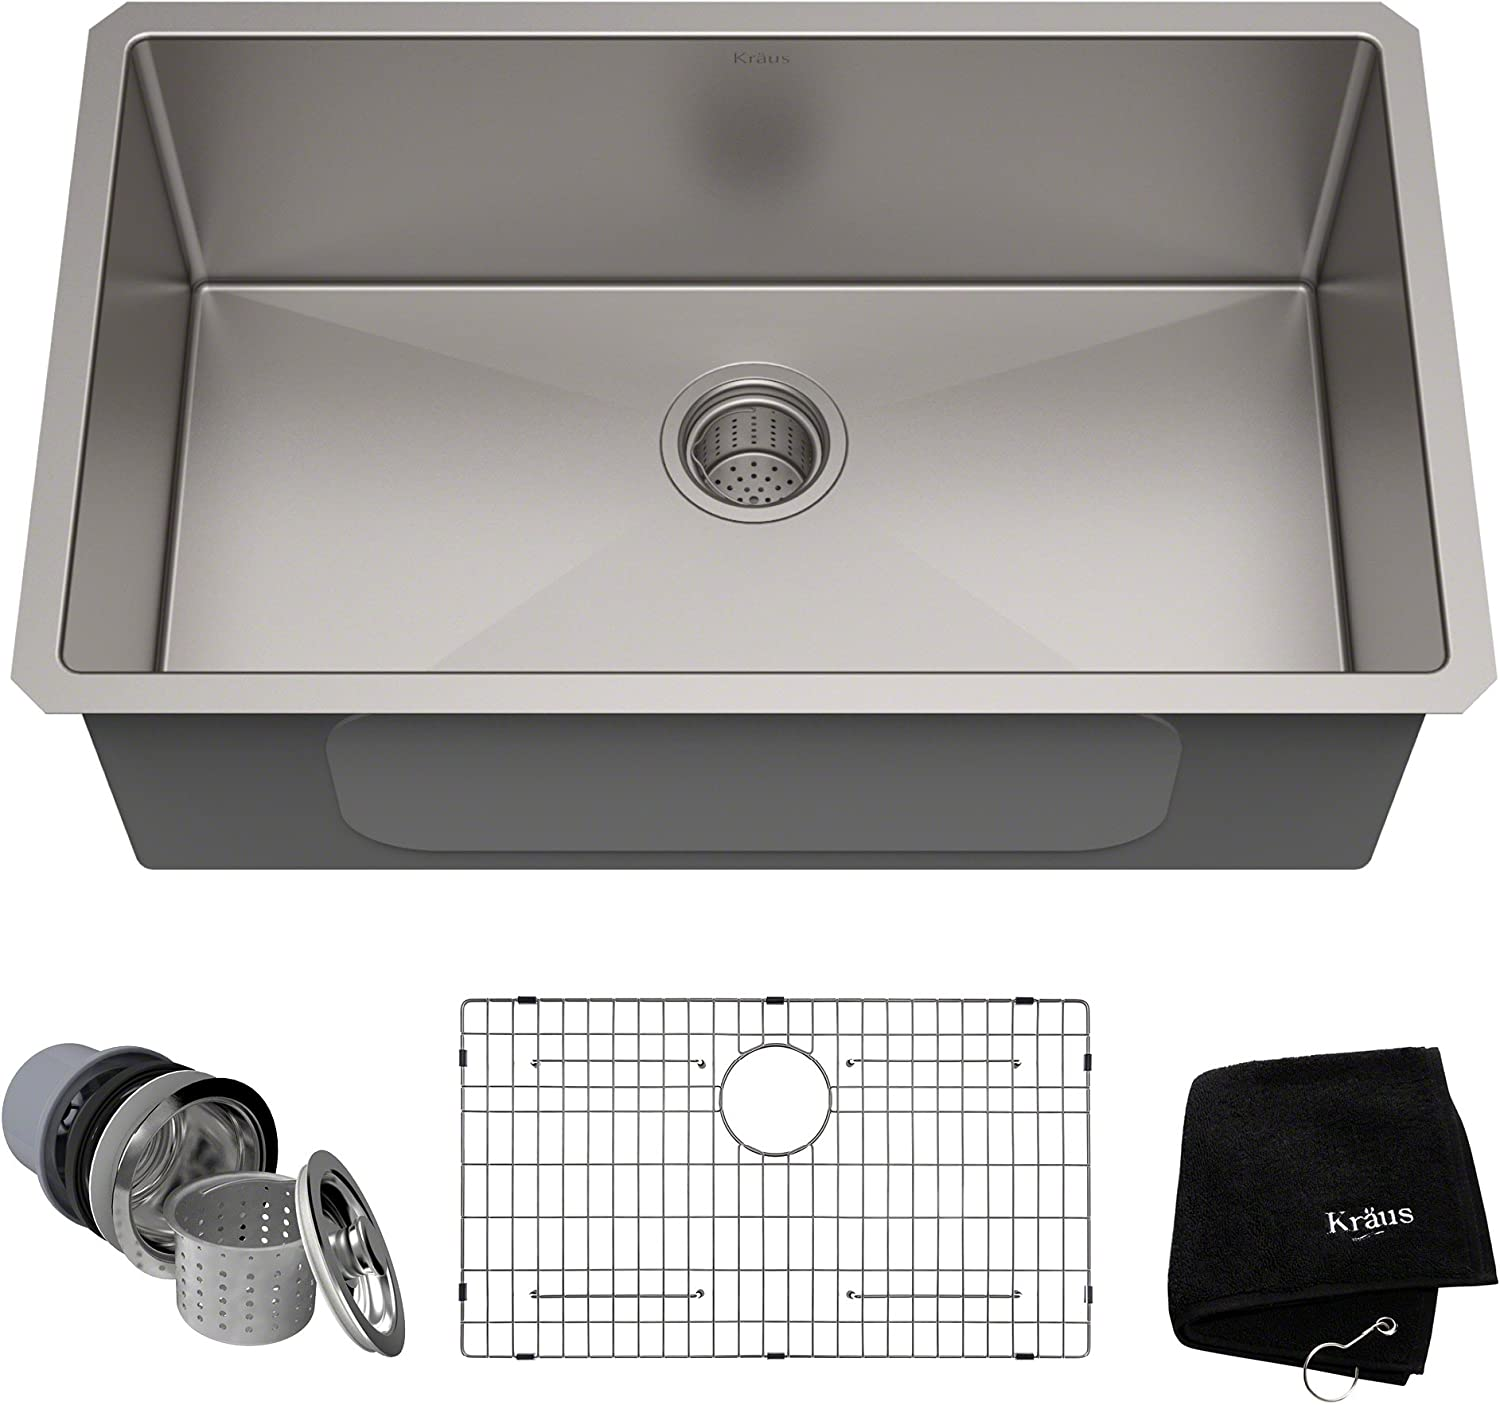 Bathroom Artistic Square Glass Vessel Sink S9052 combo with Oil Rubbed Bronze Faucet drain